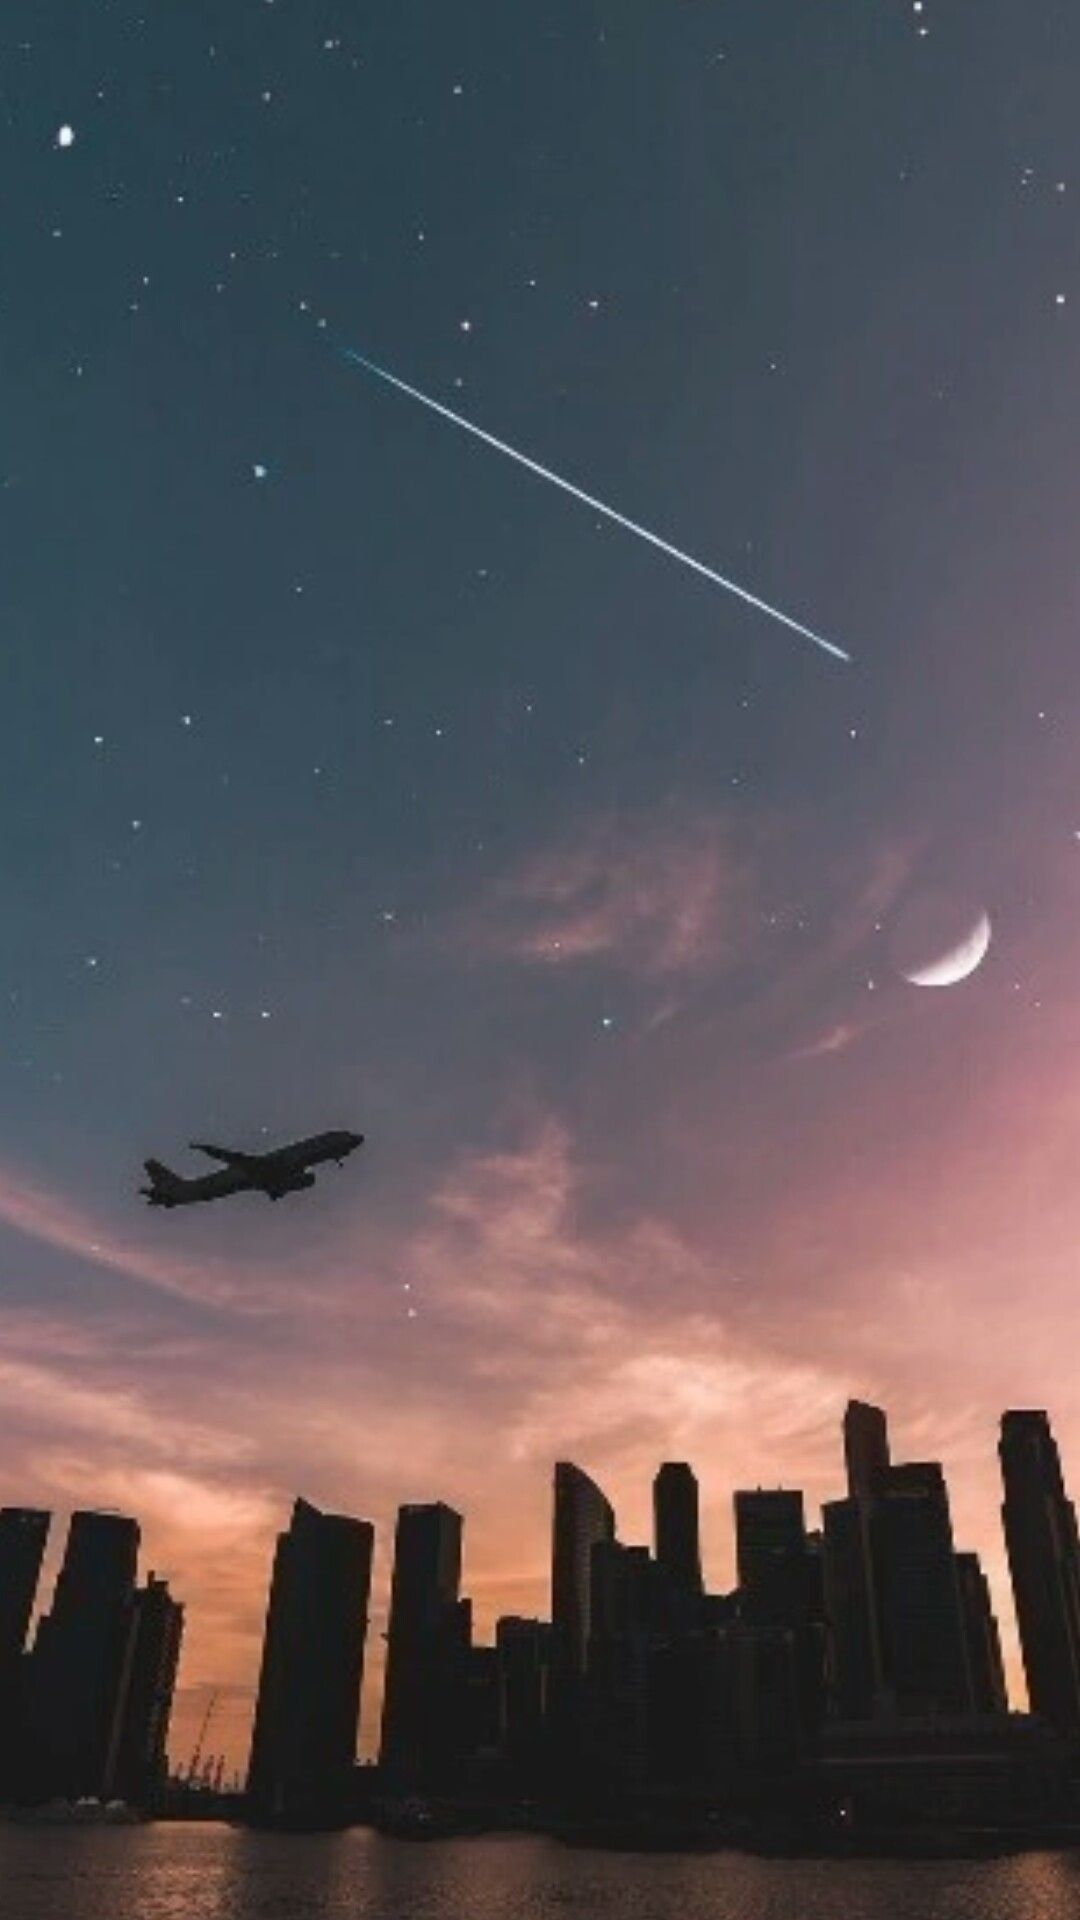 Pin By Caroline Morton On Sky Sky Aesthetic Airplane Photography Aesthetic Wallpapers